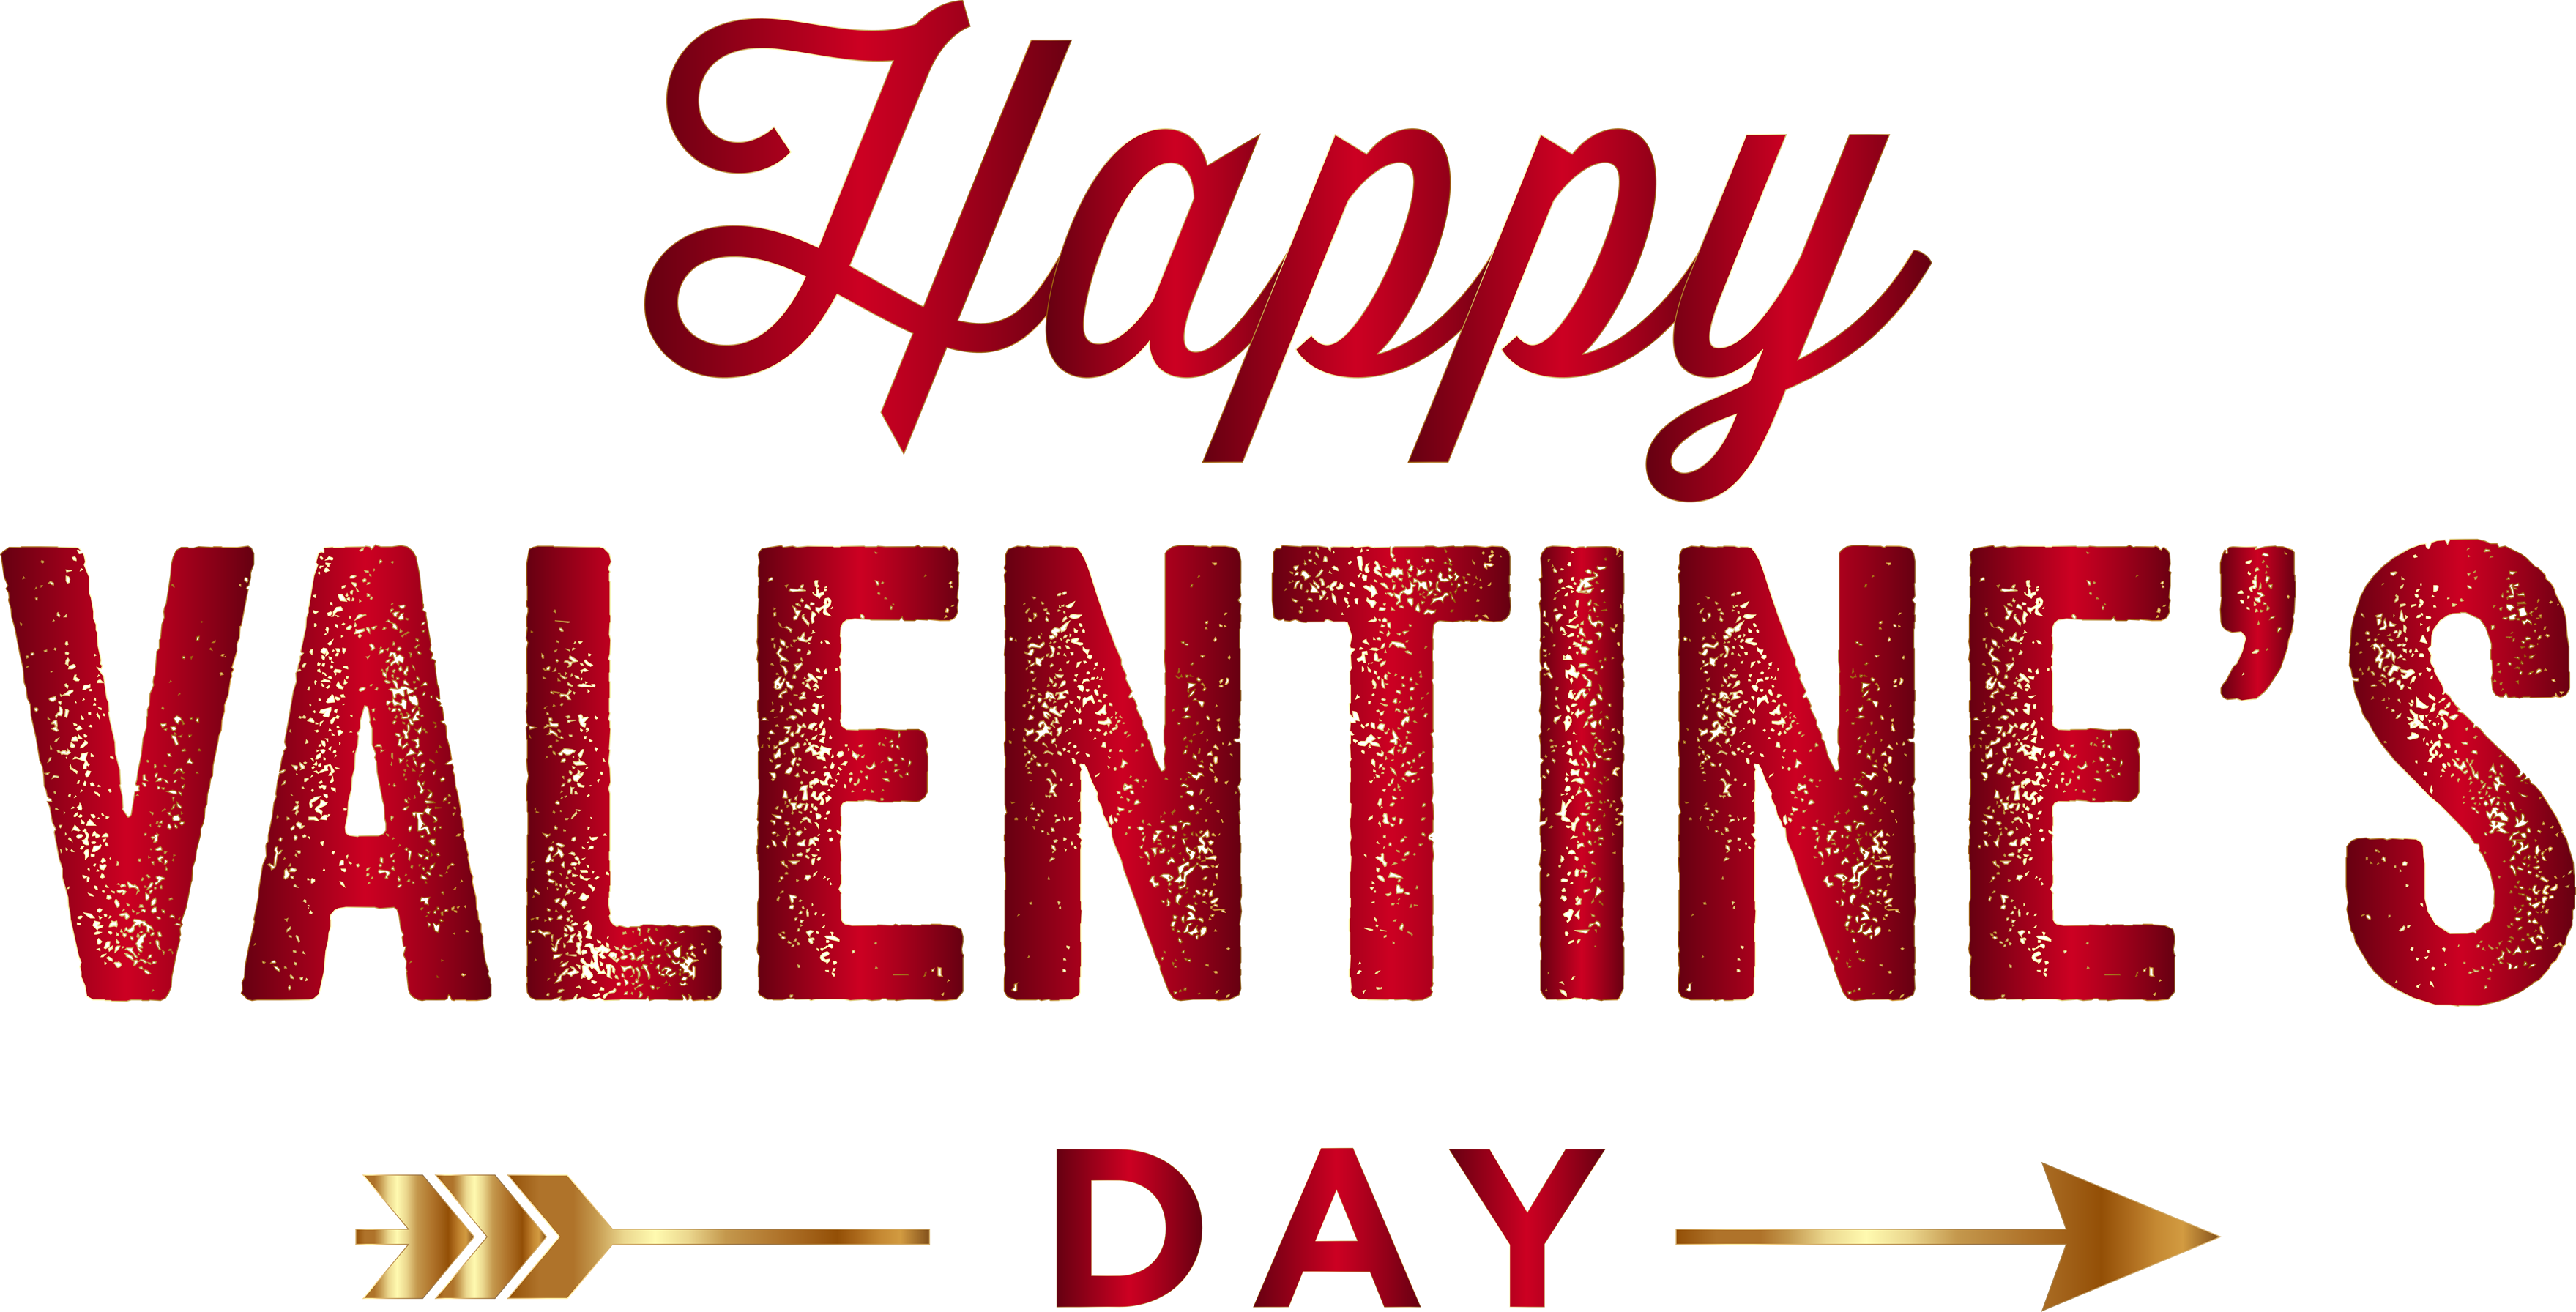 Happy Valentines Day Png Hd Image